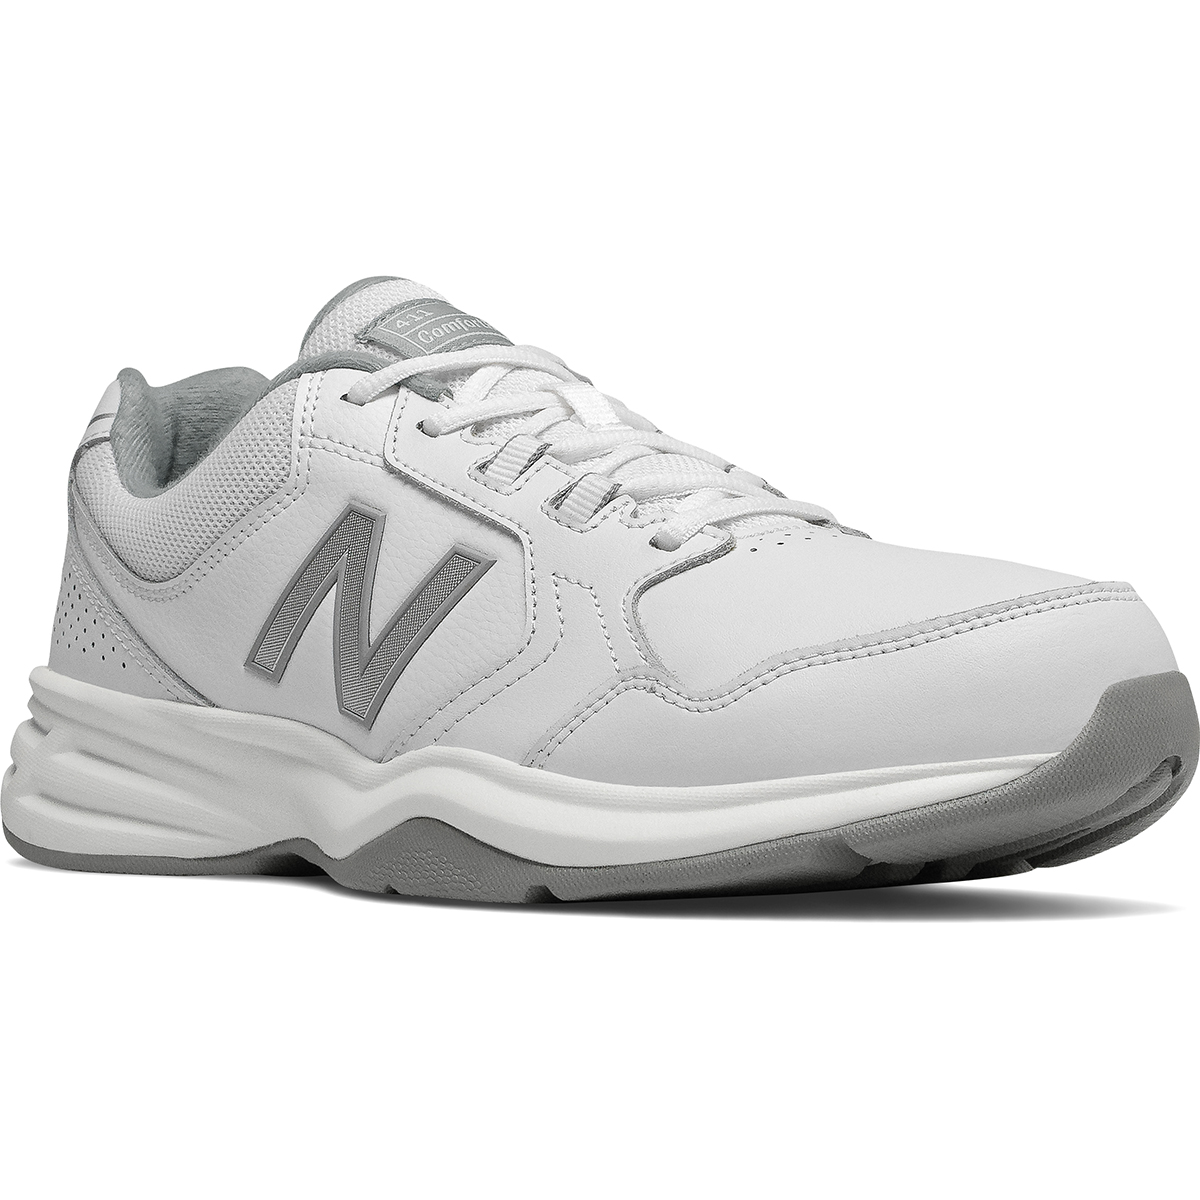 New Balance Men's 411 Walking Shoes, Wide - White, 10.5